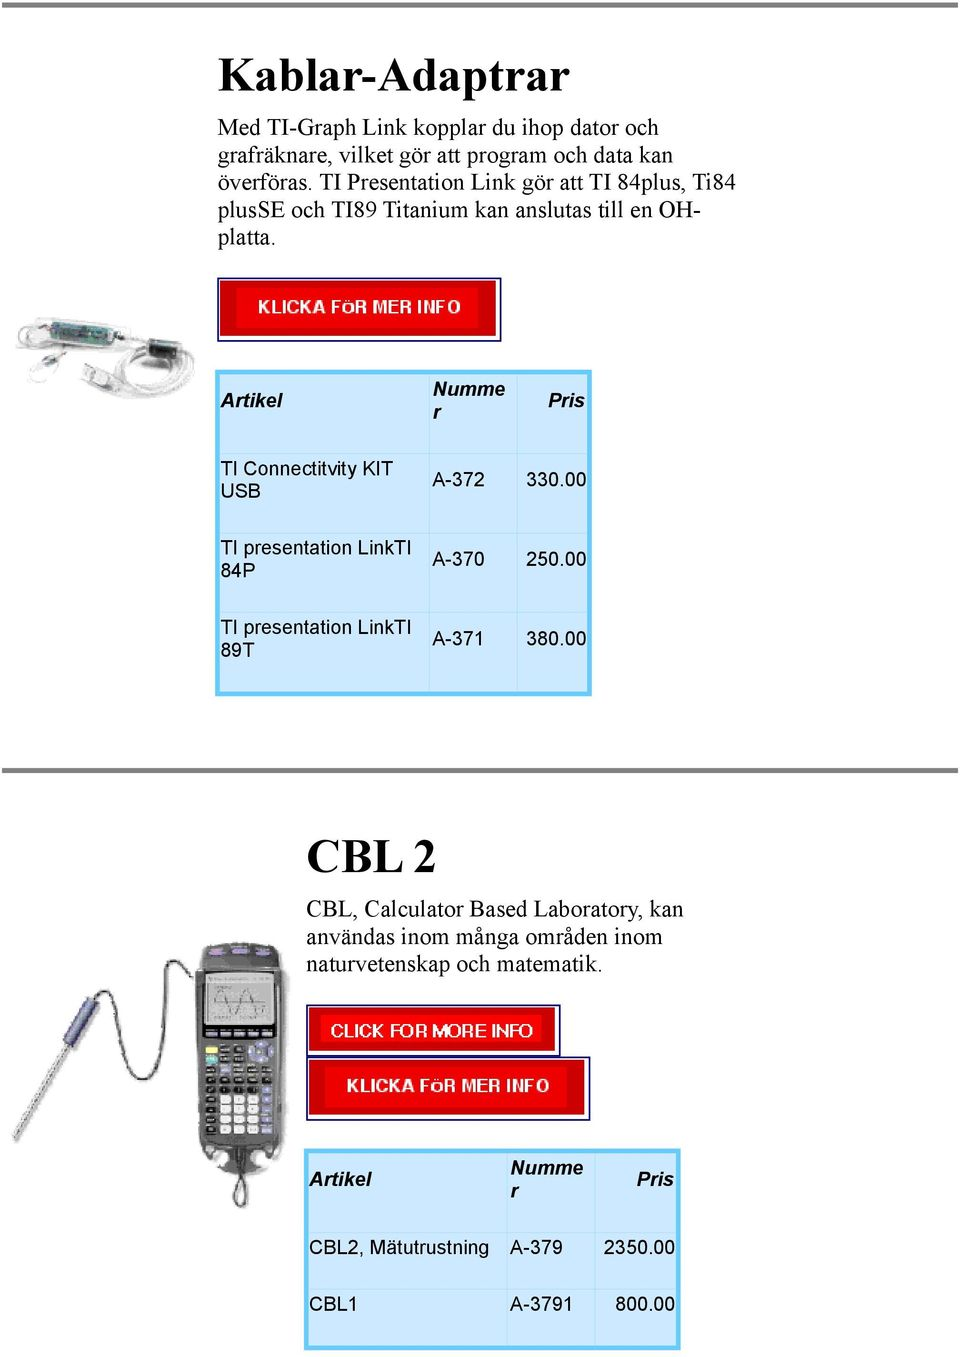 Atikel Pis TI Connectitvity KIT USB A-372 330.00 TI pesentation LinkTI 84P A-370 250.00 TI pesentation LinkTI 89T A-371 380.